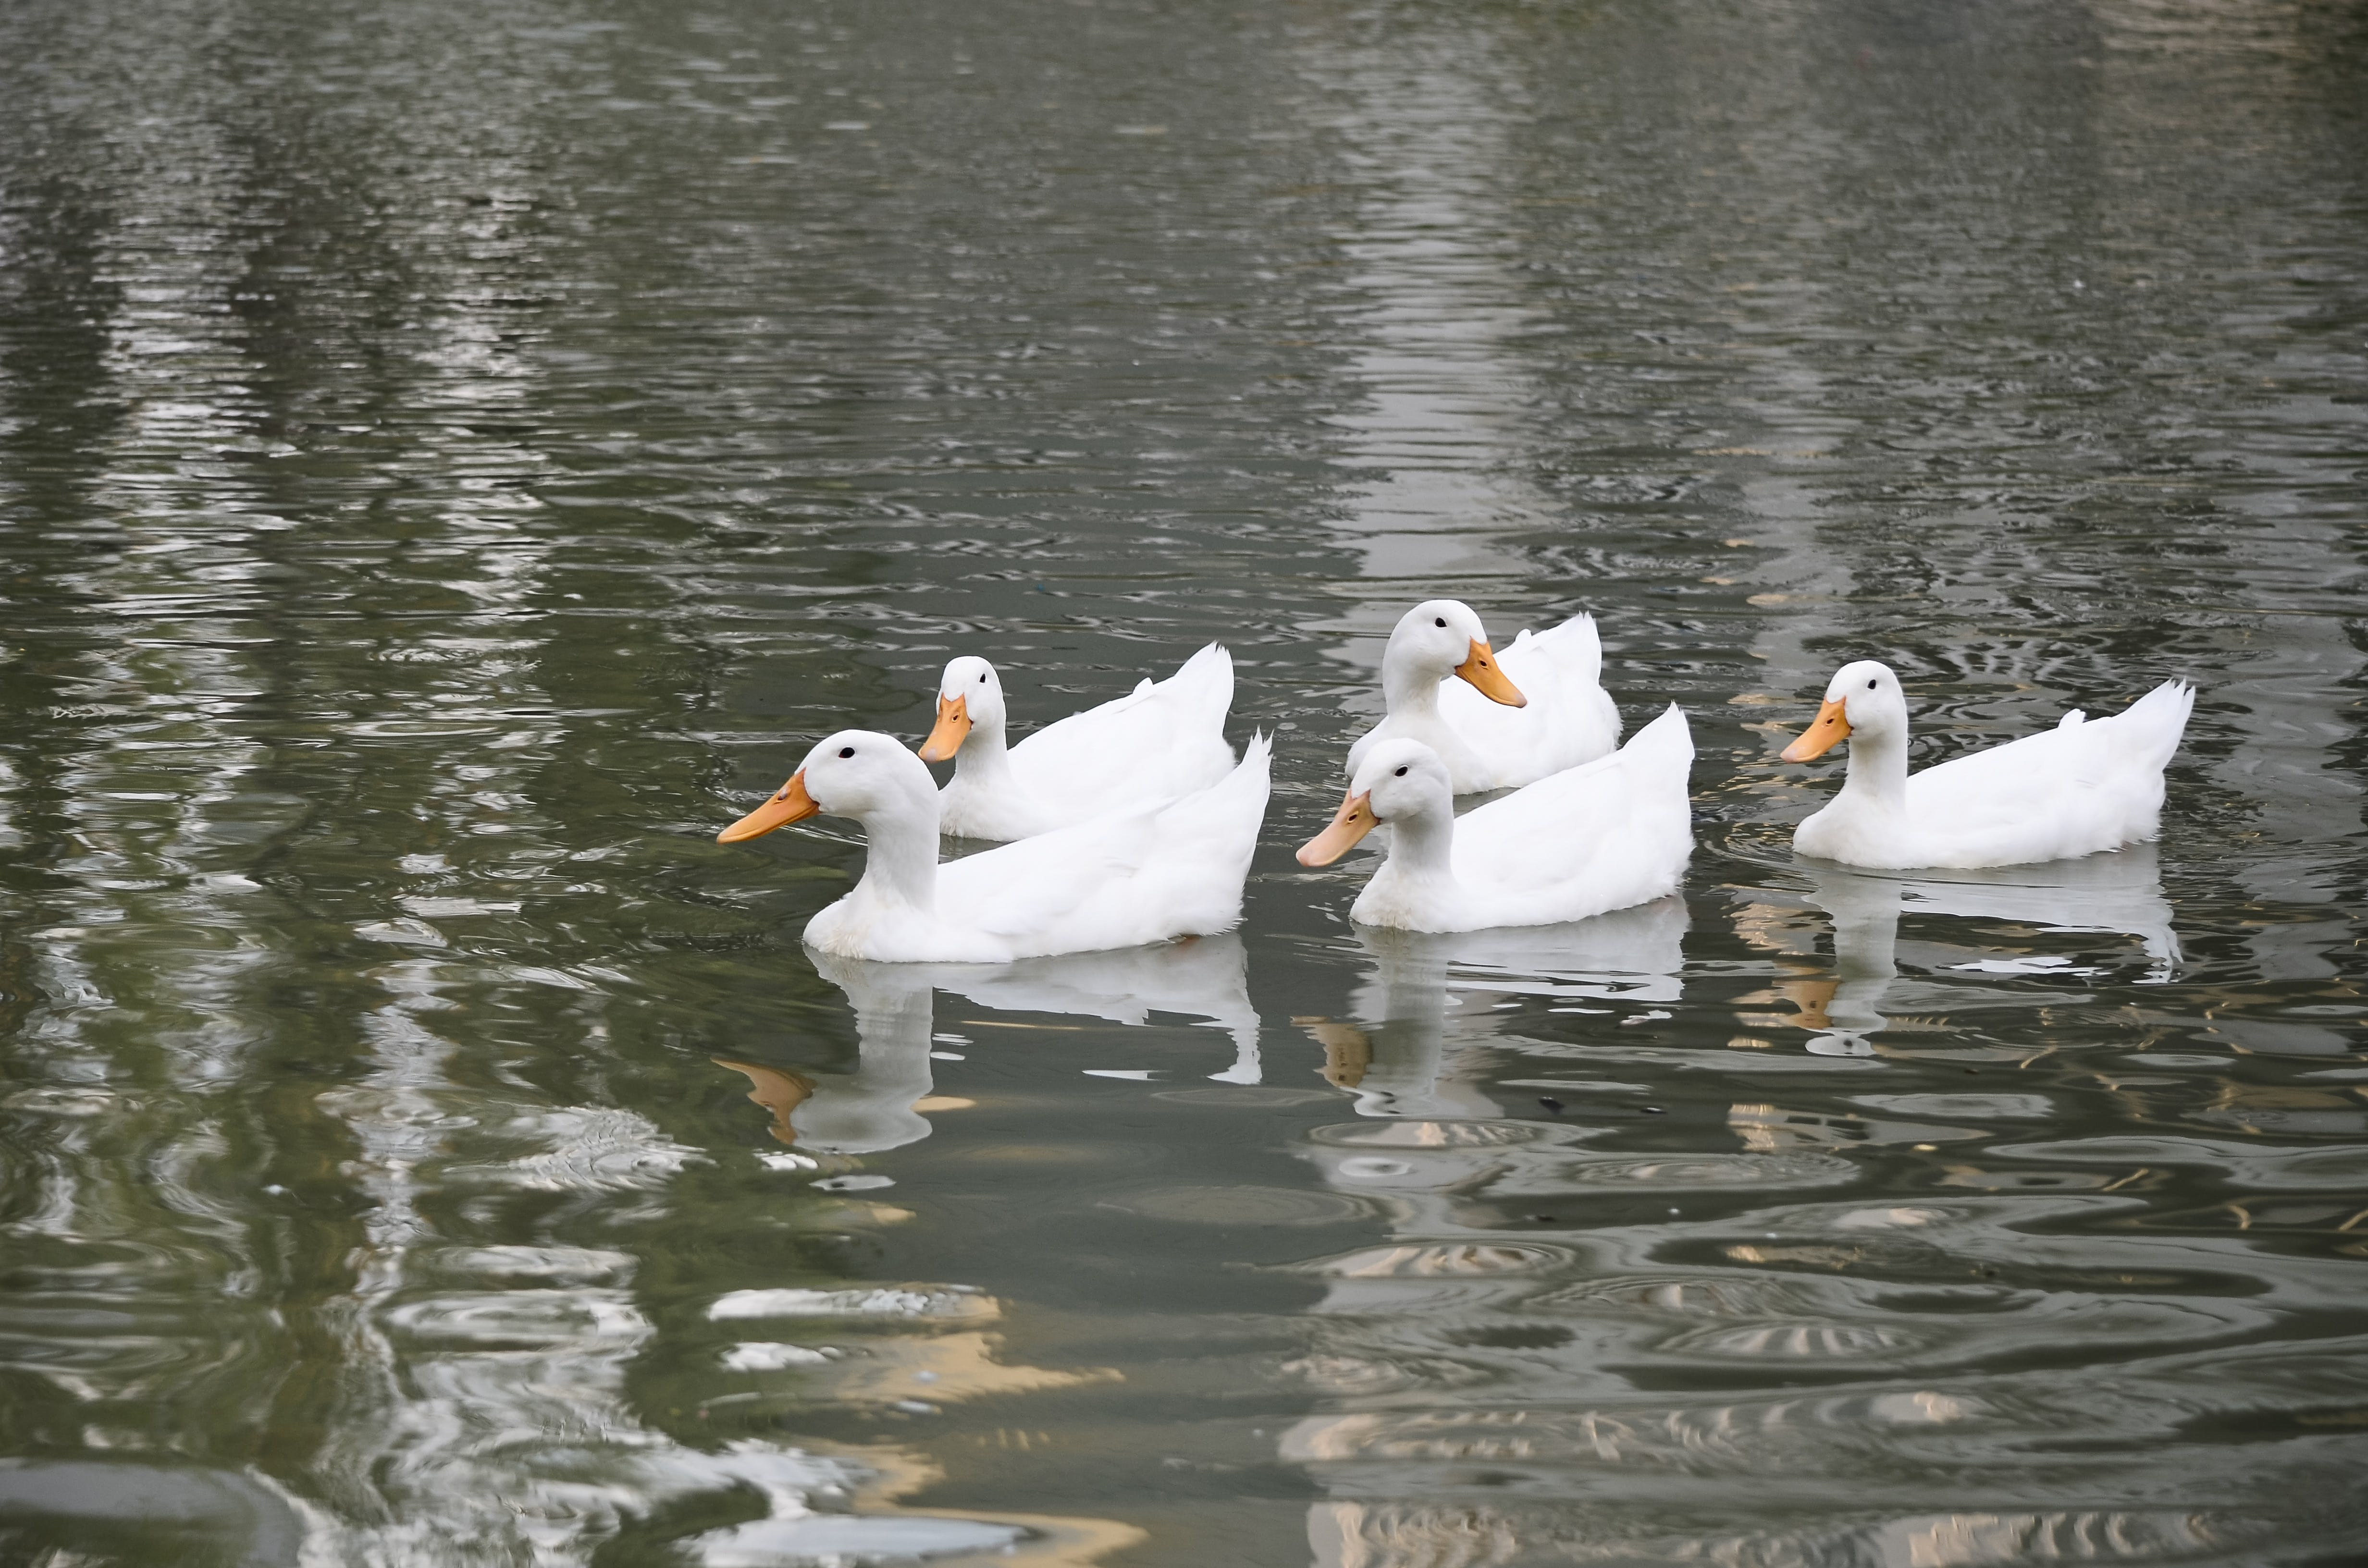 Harbourside At Marker 33, Indian Rocks Beach, 1 or 2 bedroom Condos. Ducks in Pond.